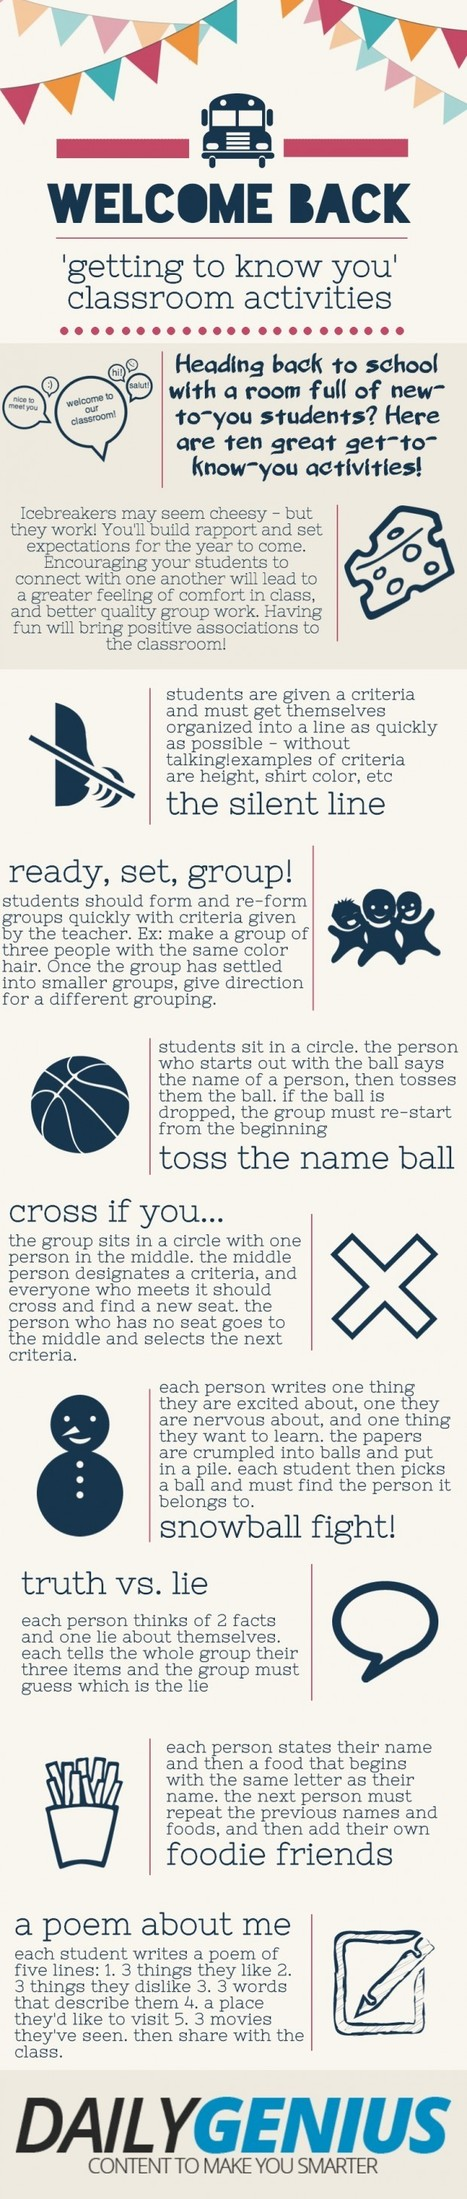 8 Effective Ways To Get To Know Your Students - Infographic | Change in the world | Scoop.it